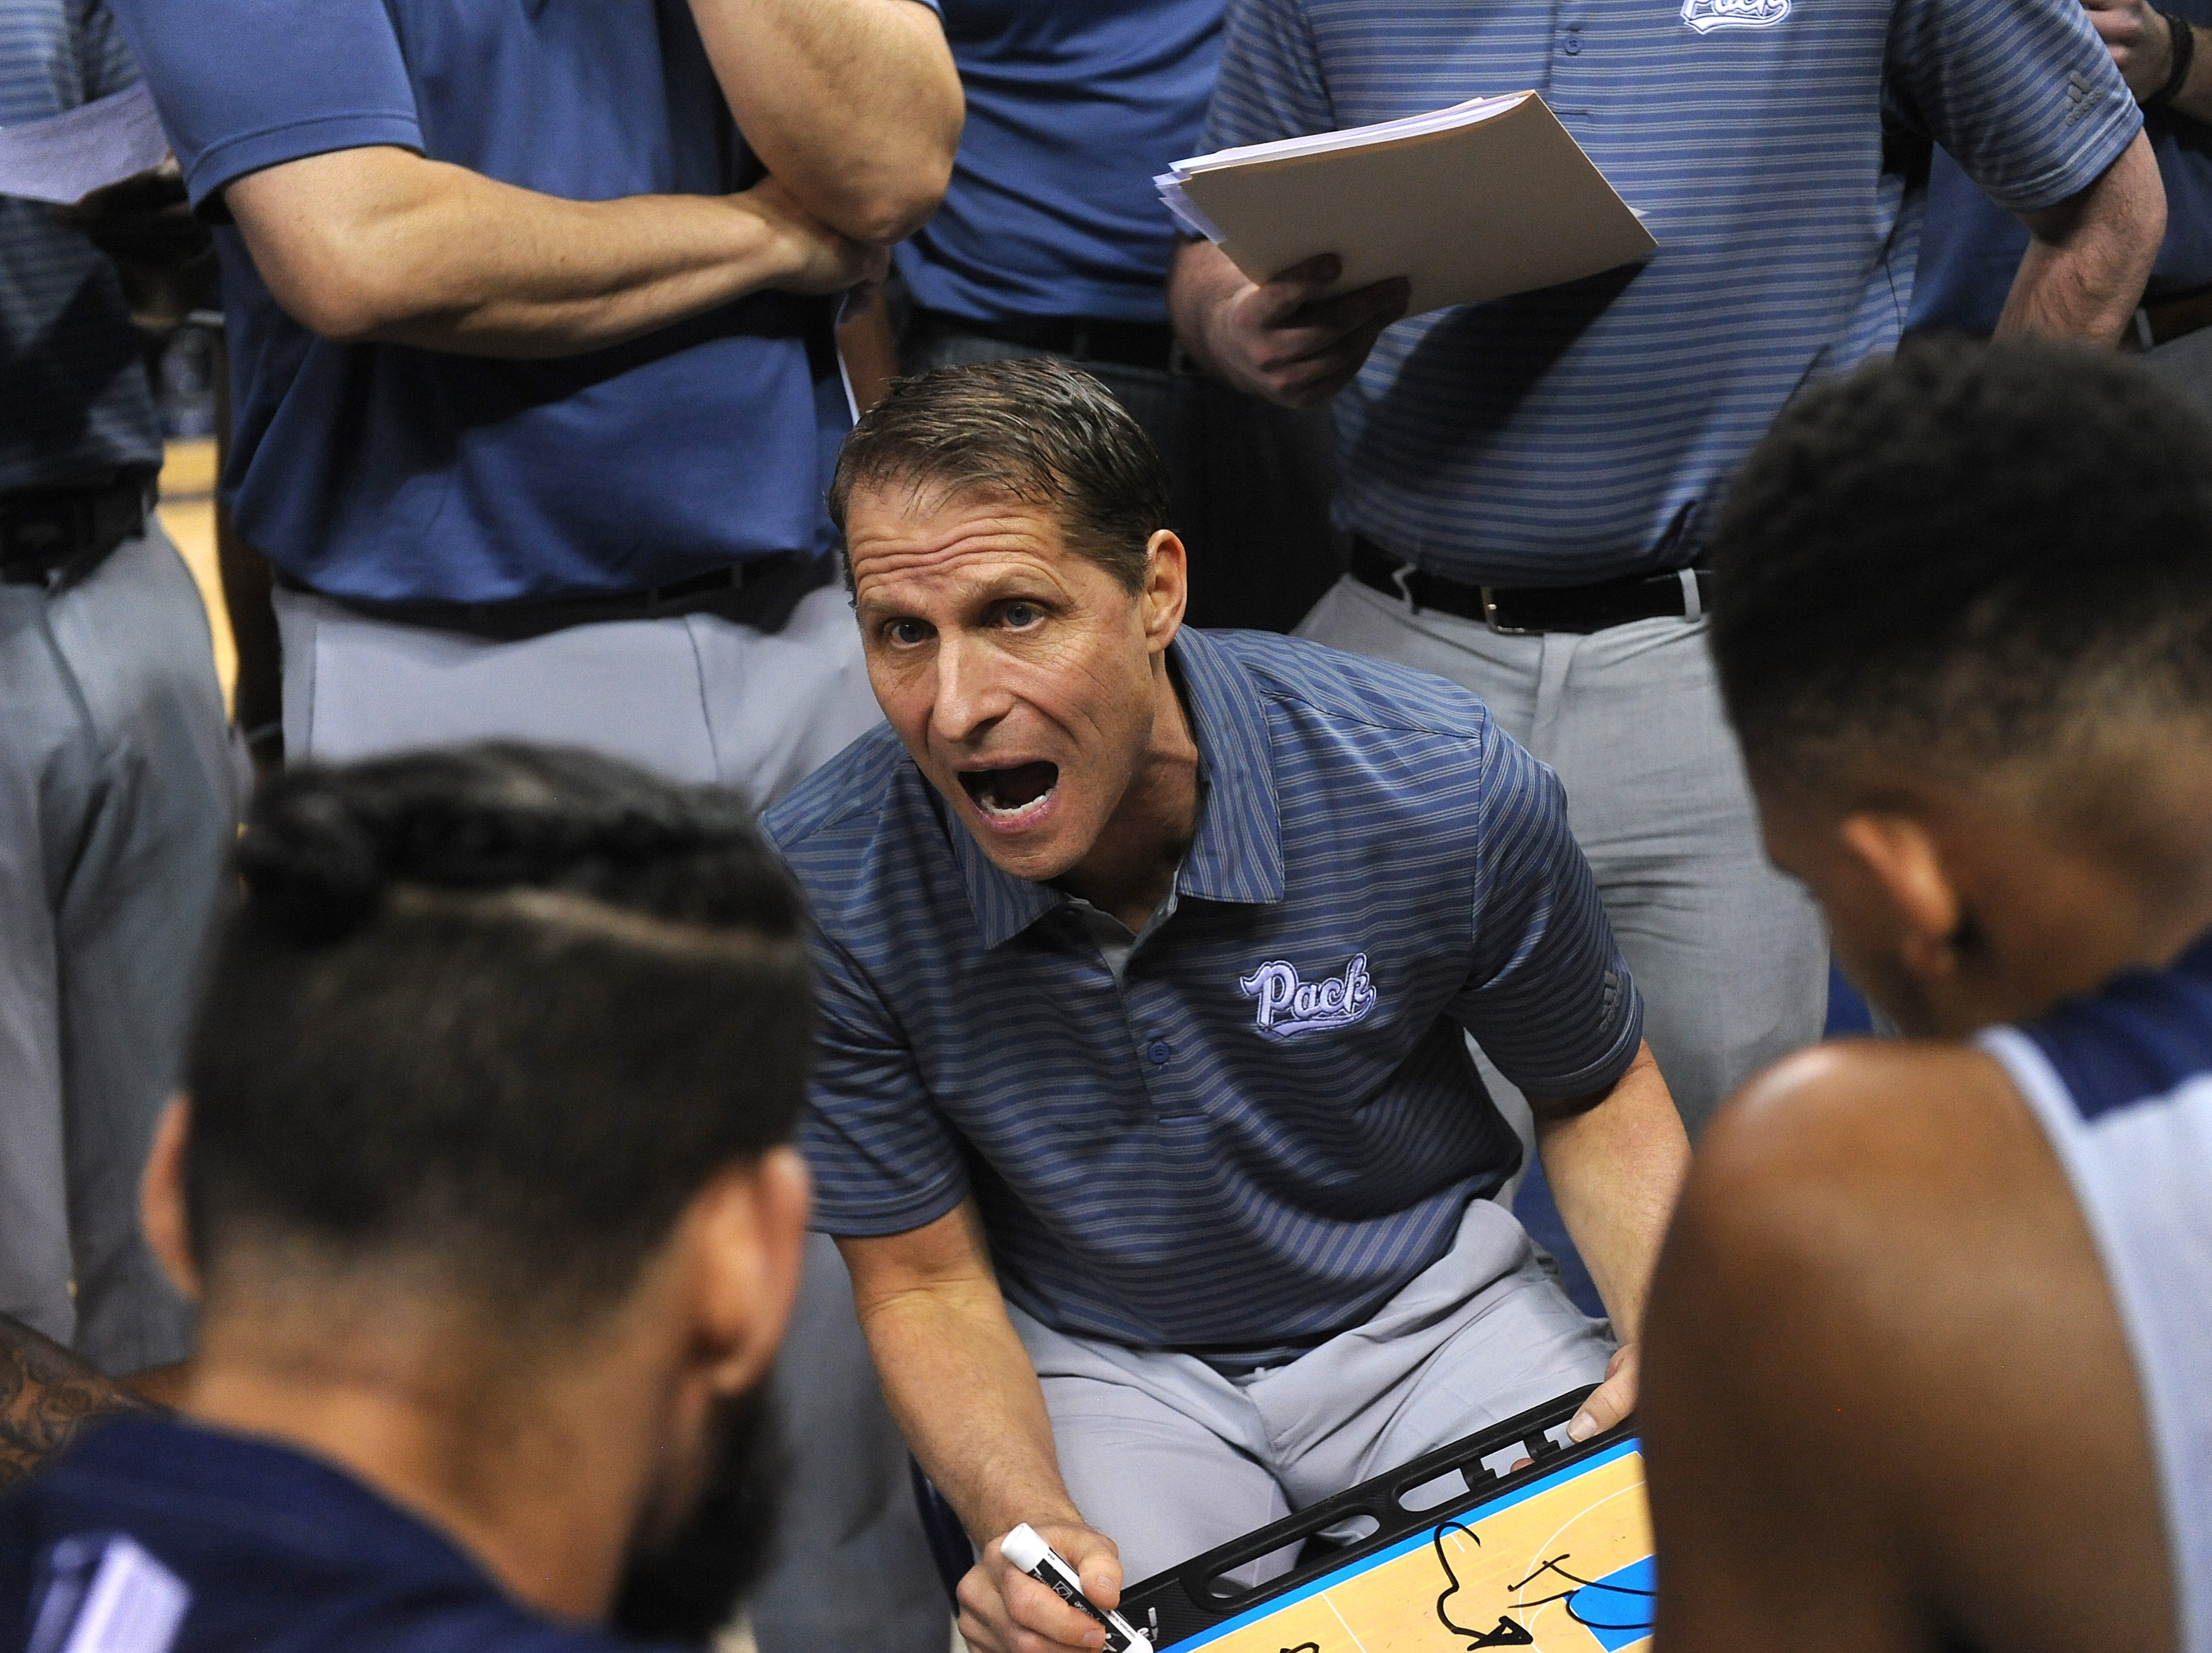 Nevada head coach Eric Musselman gives instruction during a time out while taking on South Dakota State during their basketball game at Lawlor Events Center in Reno on Dec. 15, 2018.